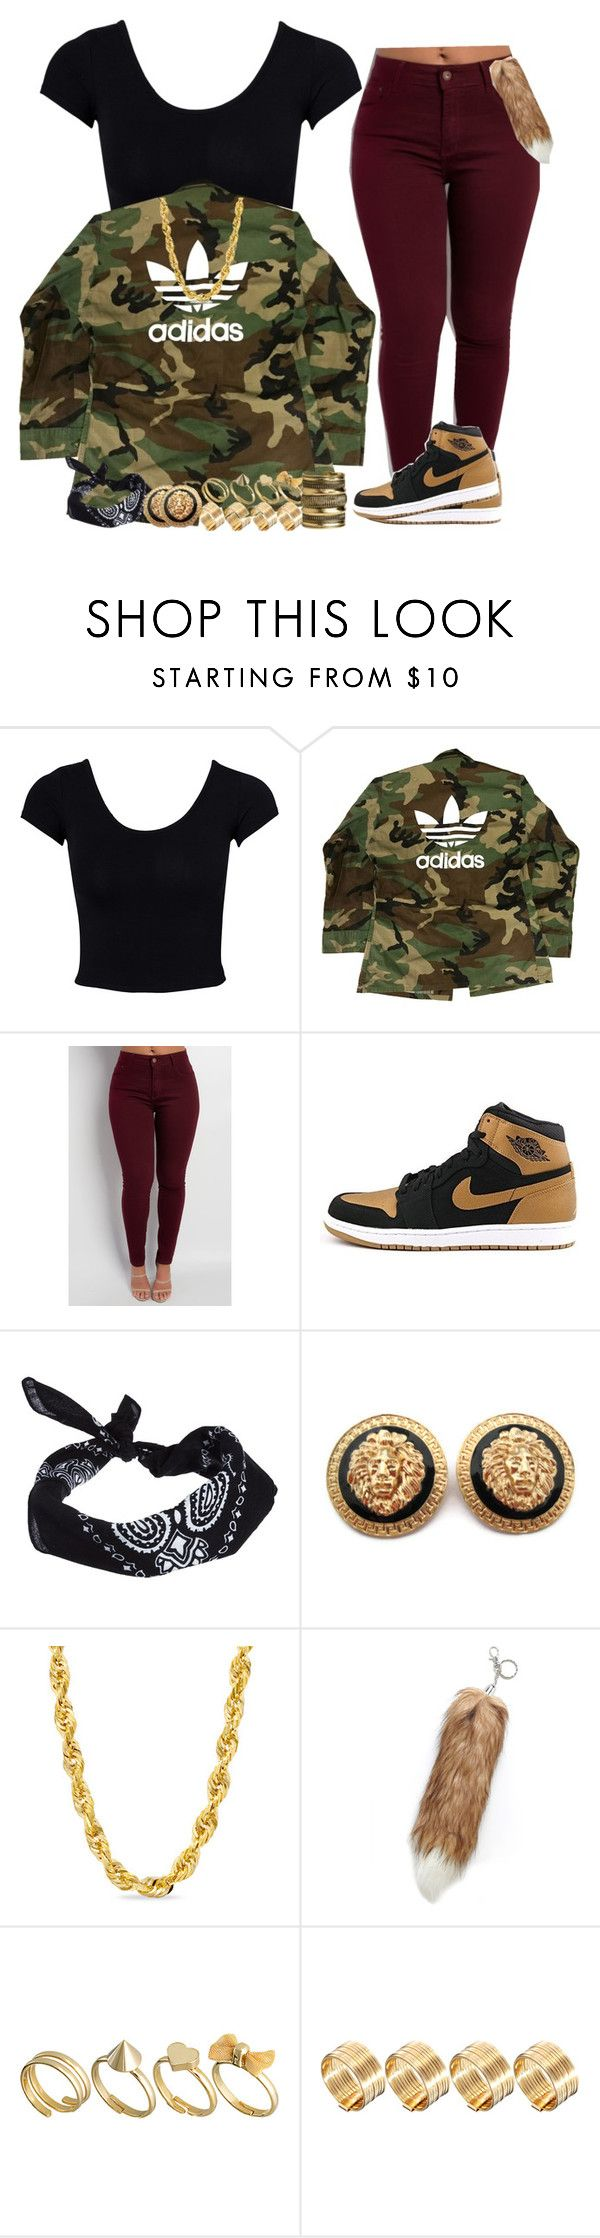 """""""Don't Wanna Deal With The Naggin' Girl, The Average Girl"""" by vi-demigliore ❤ liked on Polyvore featuring Estradeur, adidas, NIKE, ASOS, Zales and H&M"""